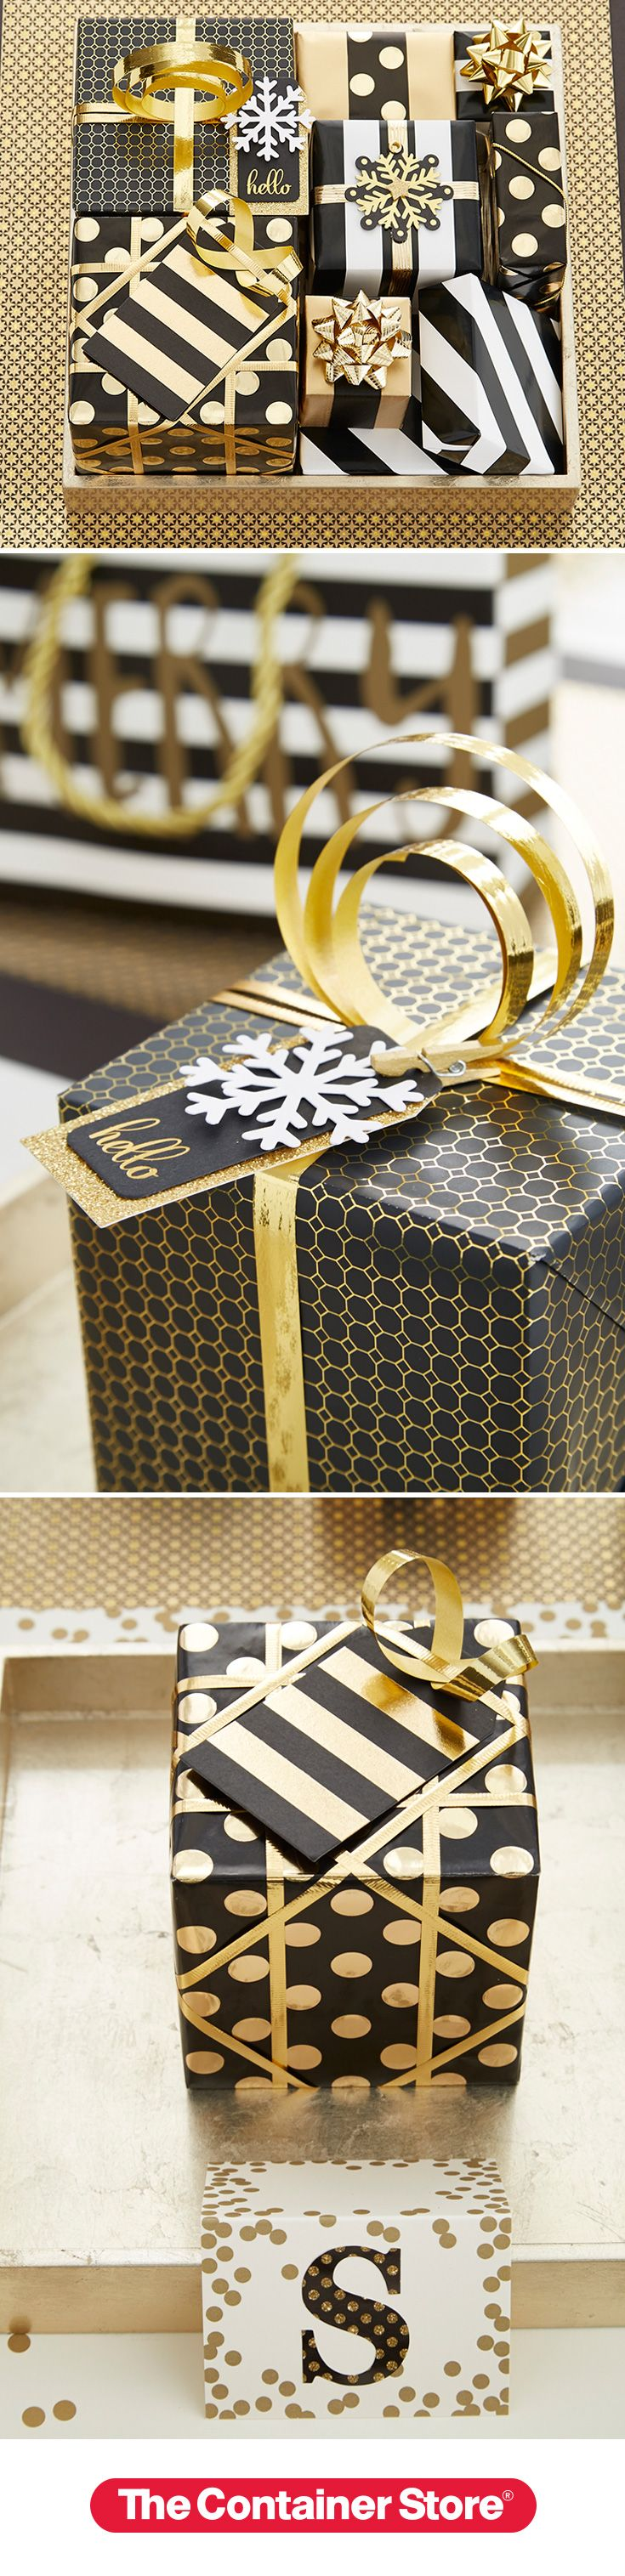 Glam it up this Christmas with our elegant black, white and gold wraps, ribbons and bows! For a unique look, make our Vertical Curl Bow using our metallic gold ribbon!